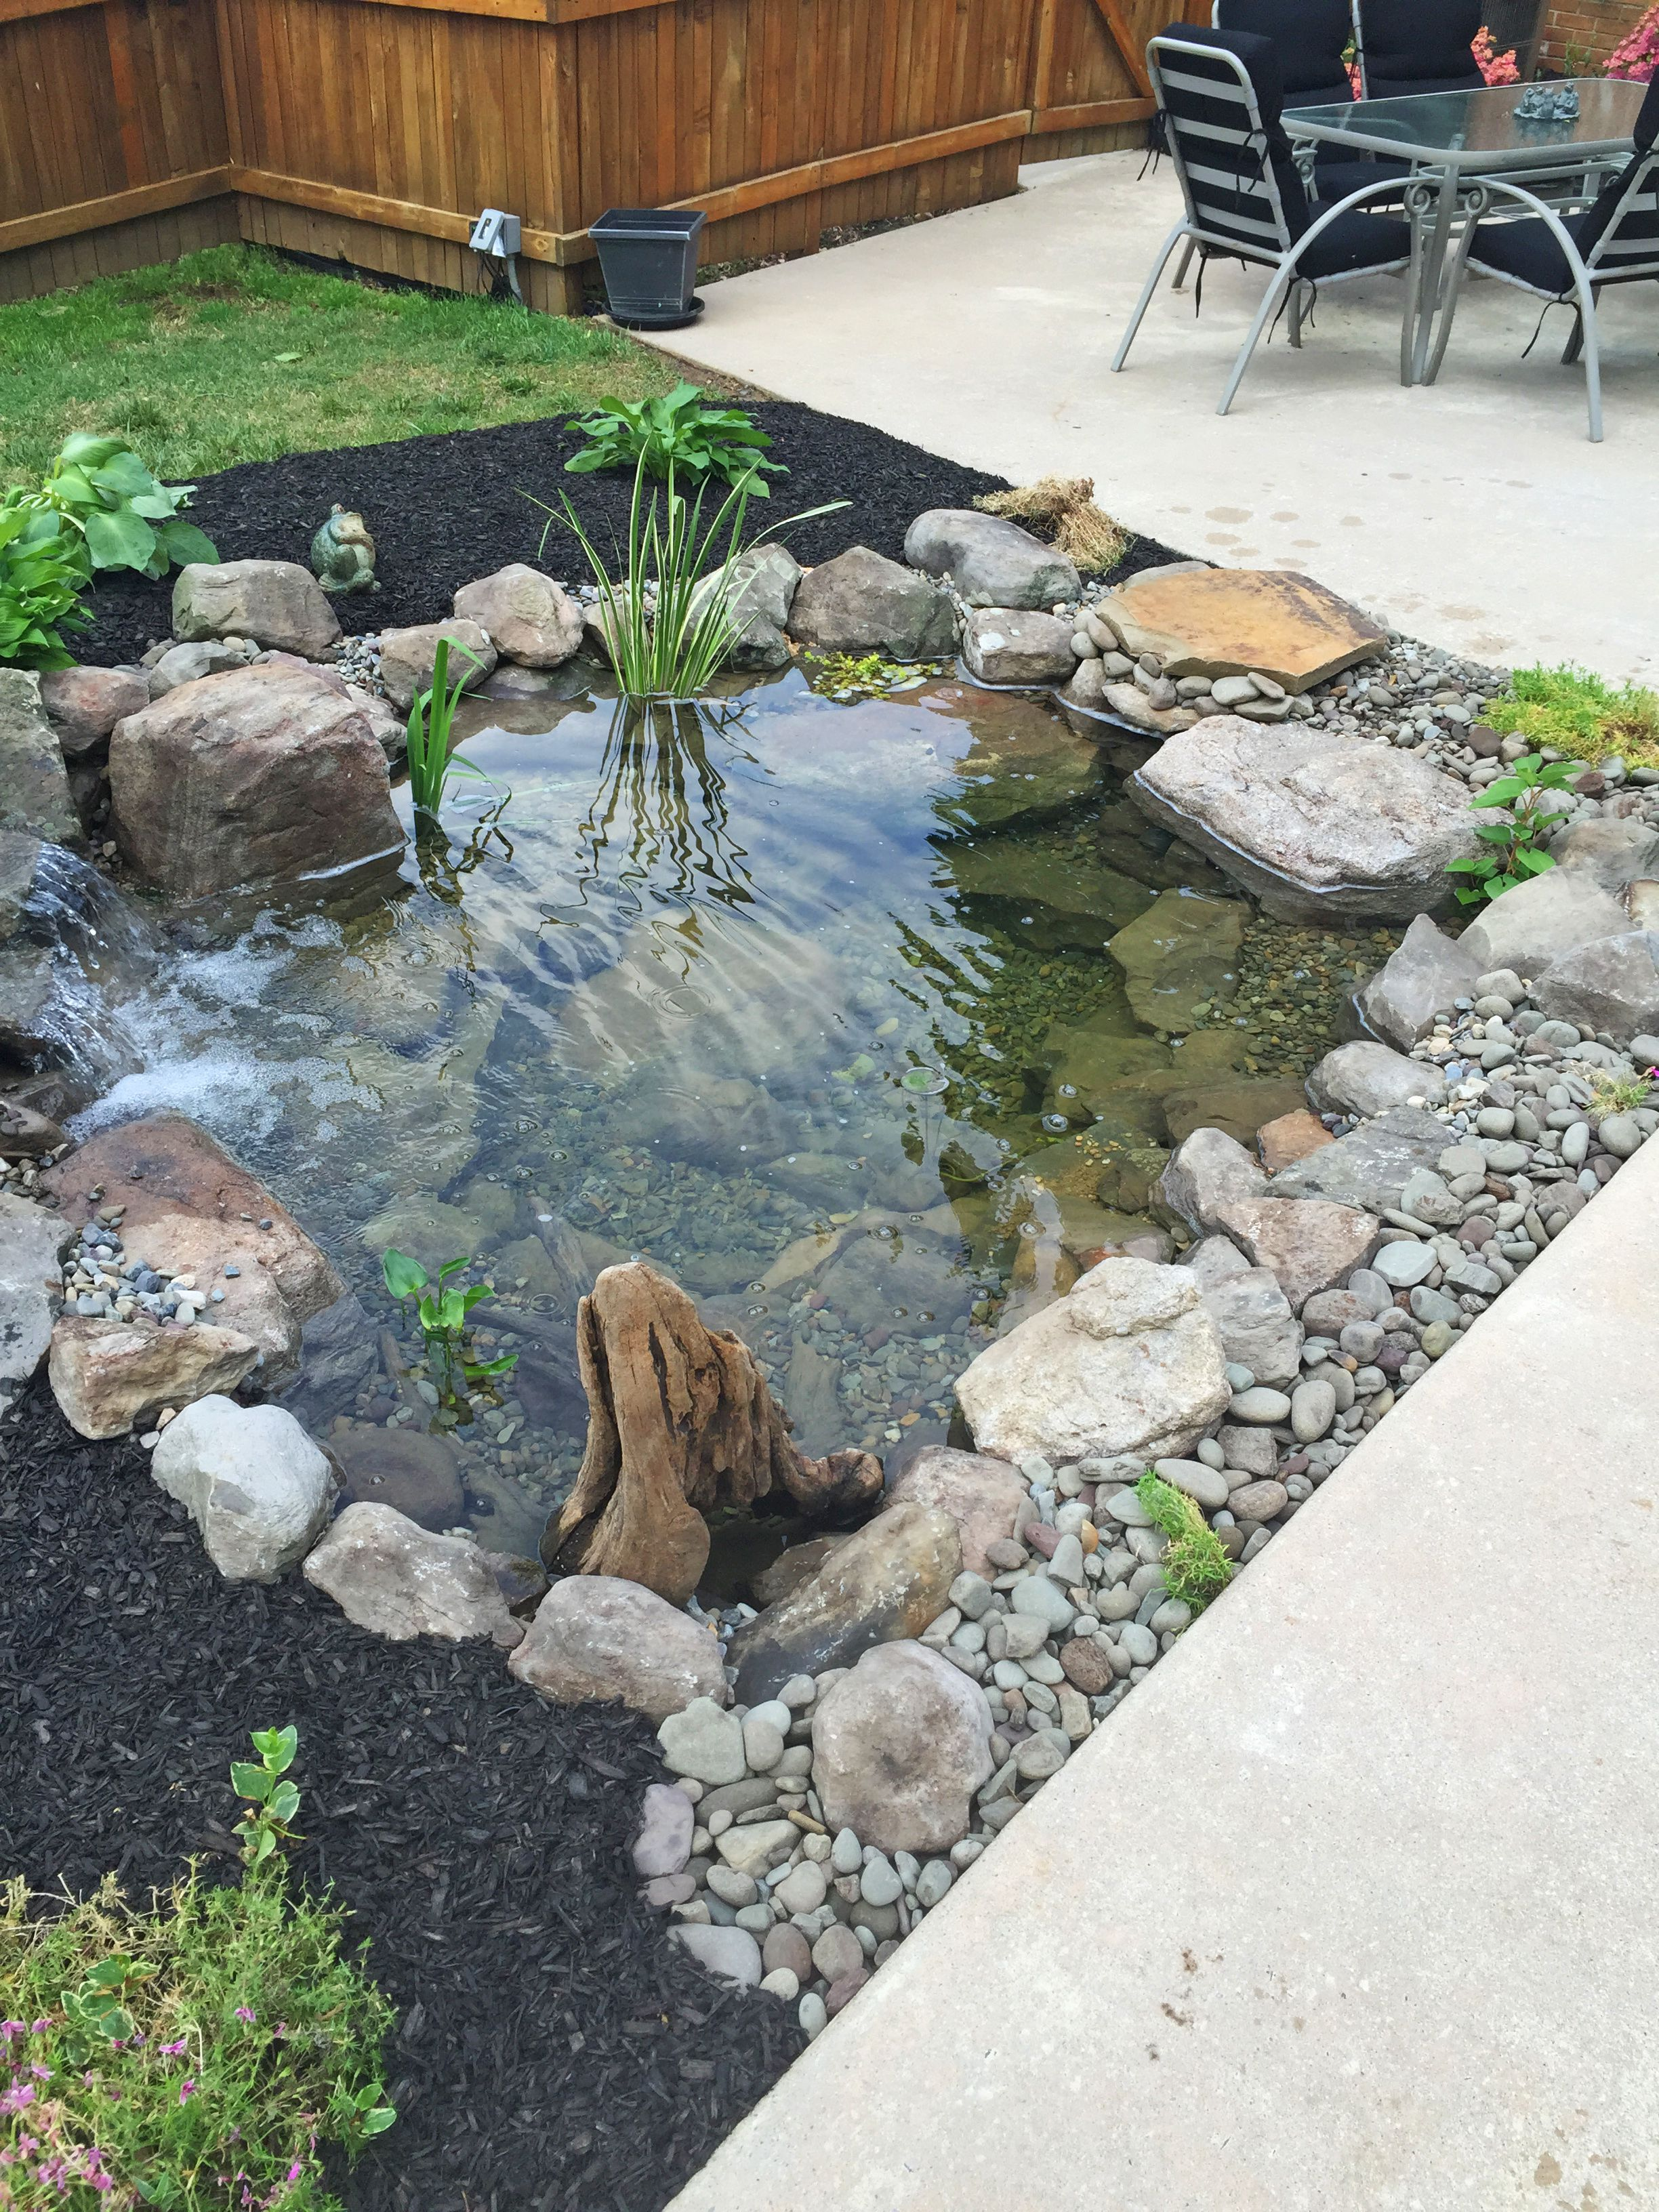 Backyard fish pond waterfall koi water garden waterscapes for Waterfall features